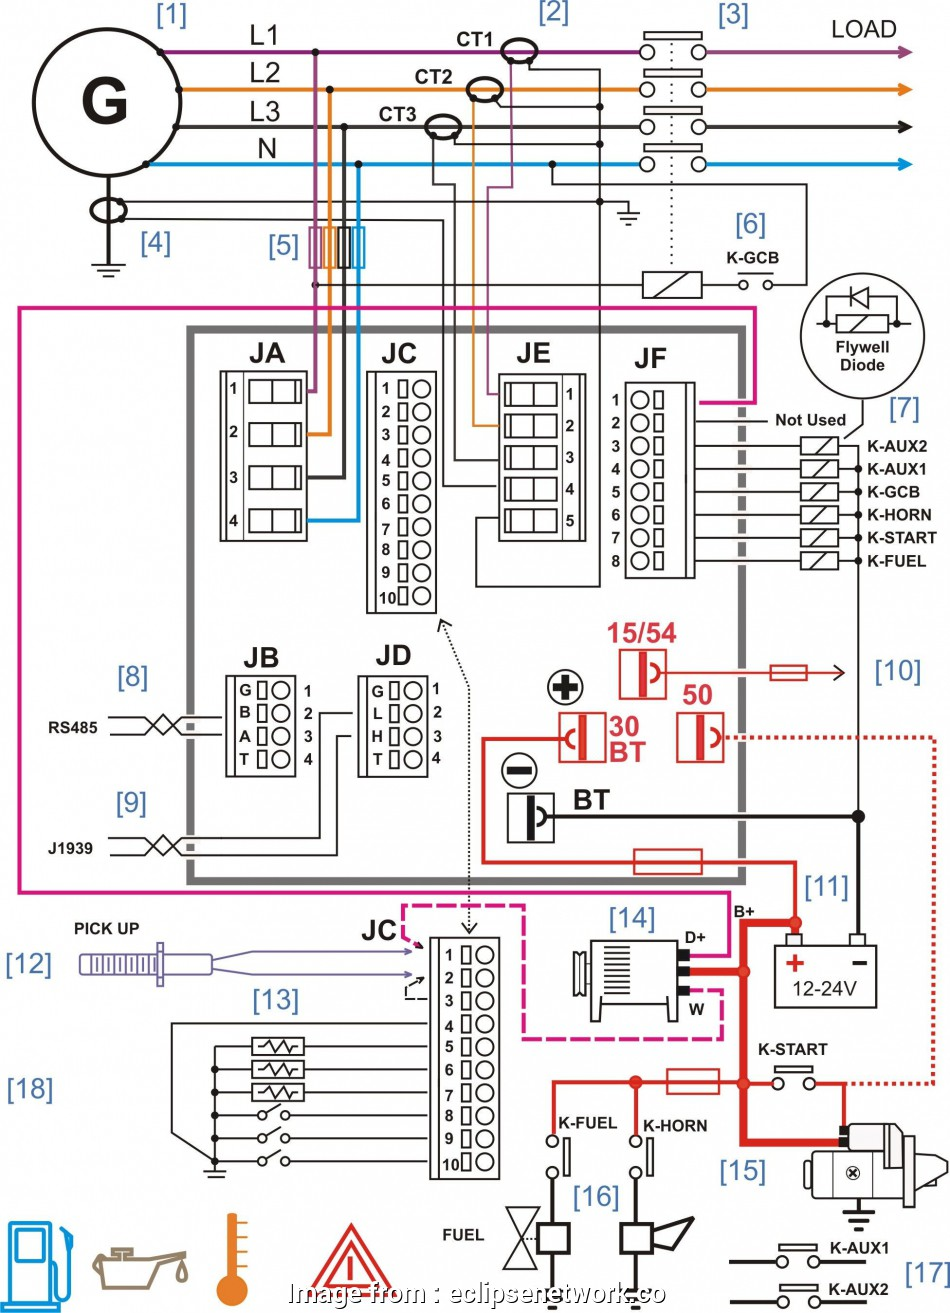 Basic Home Electrical Wiring Tutorial Top Electrical